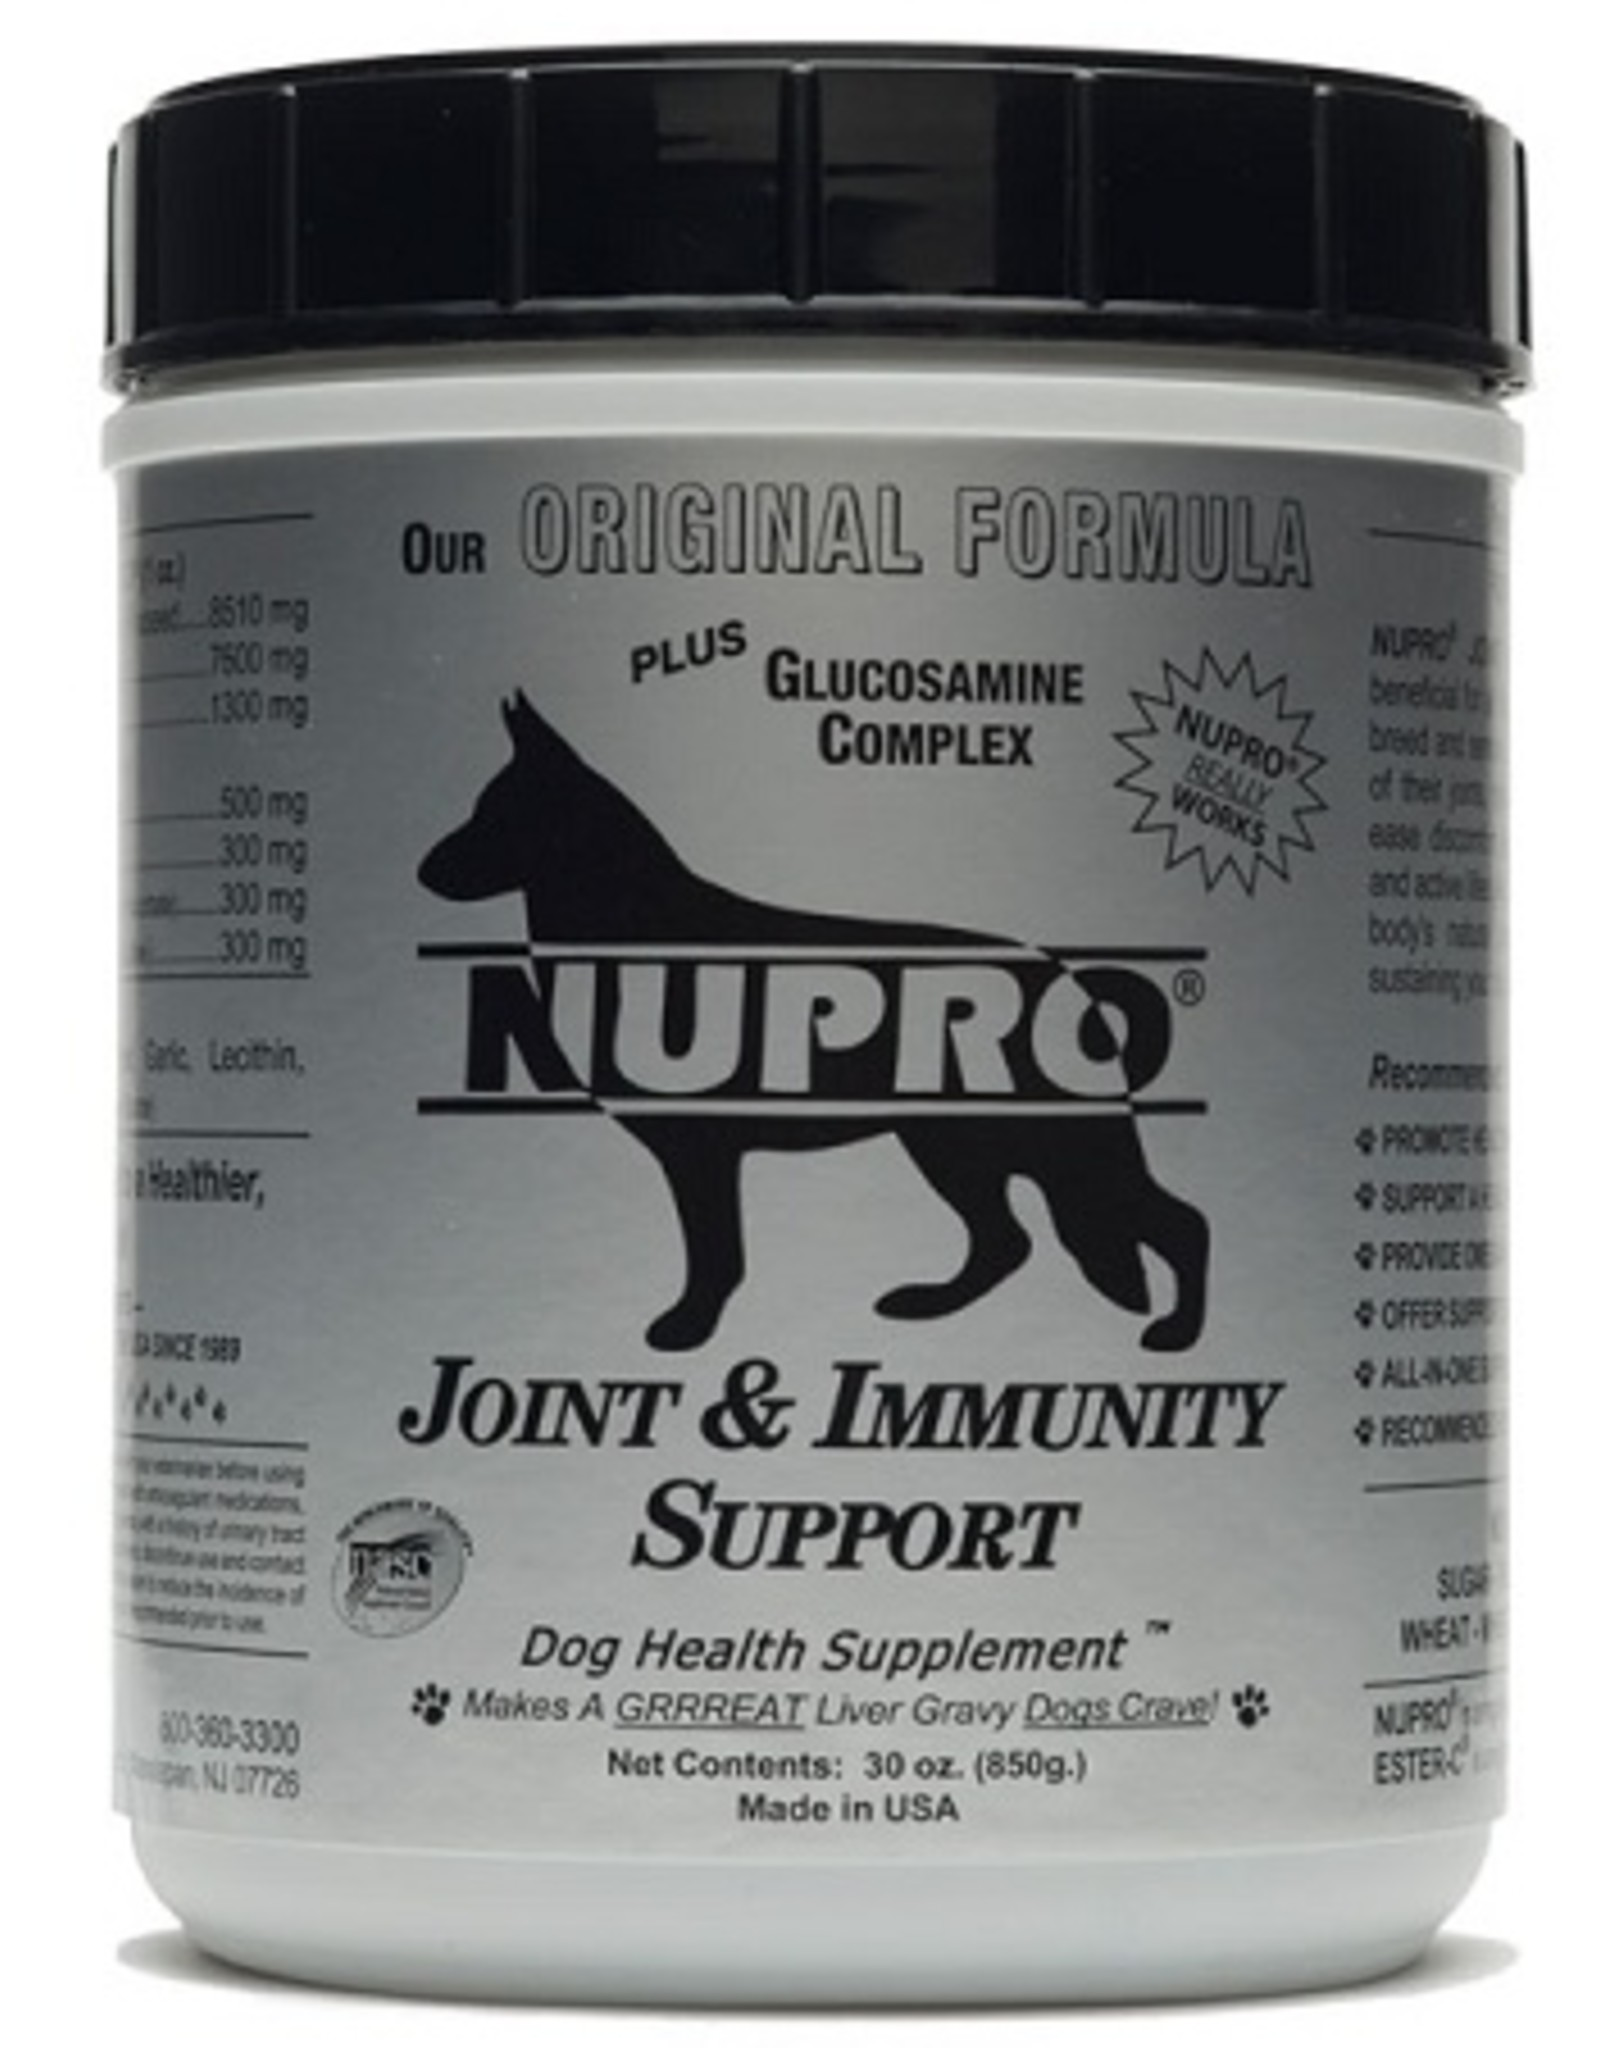 NUPRO Supplements Joint & Immunity Support 30oz